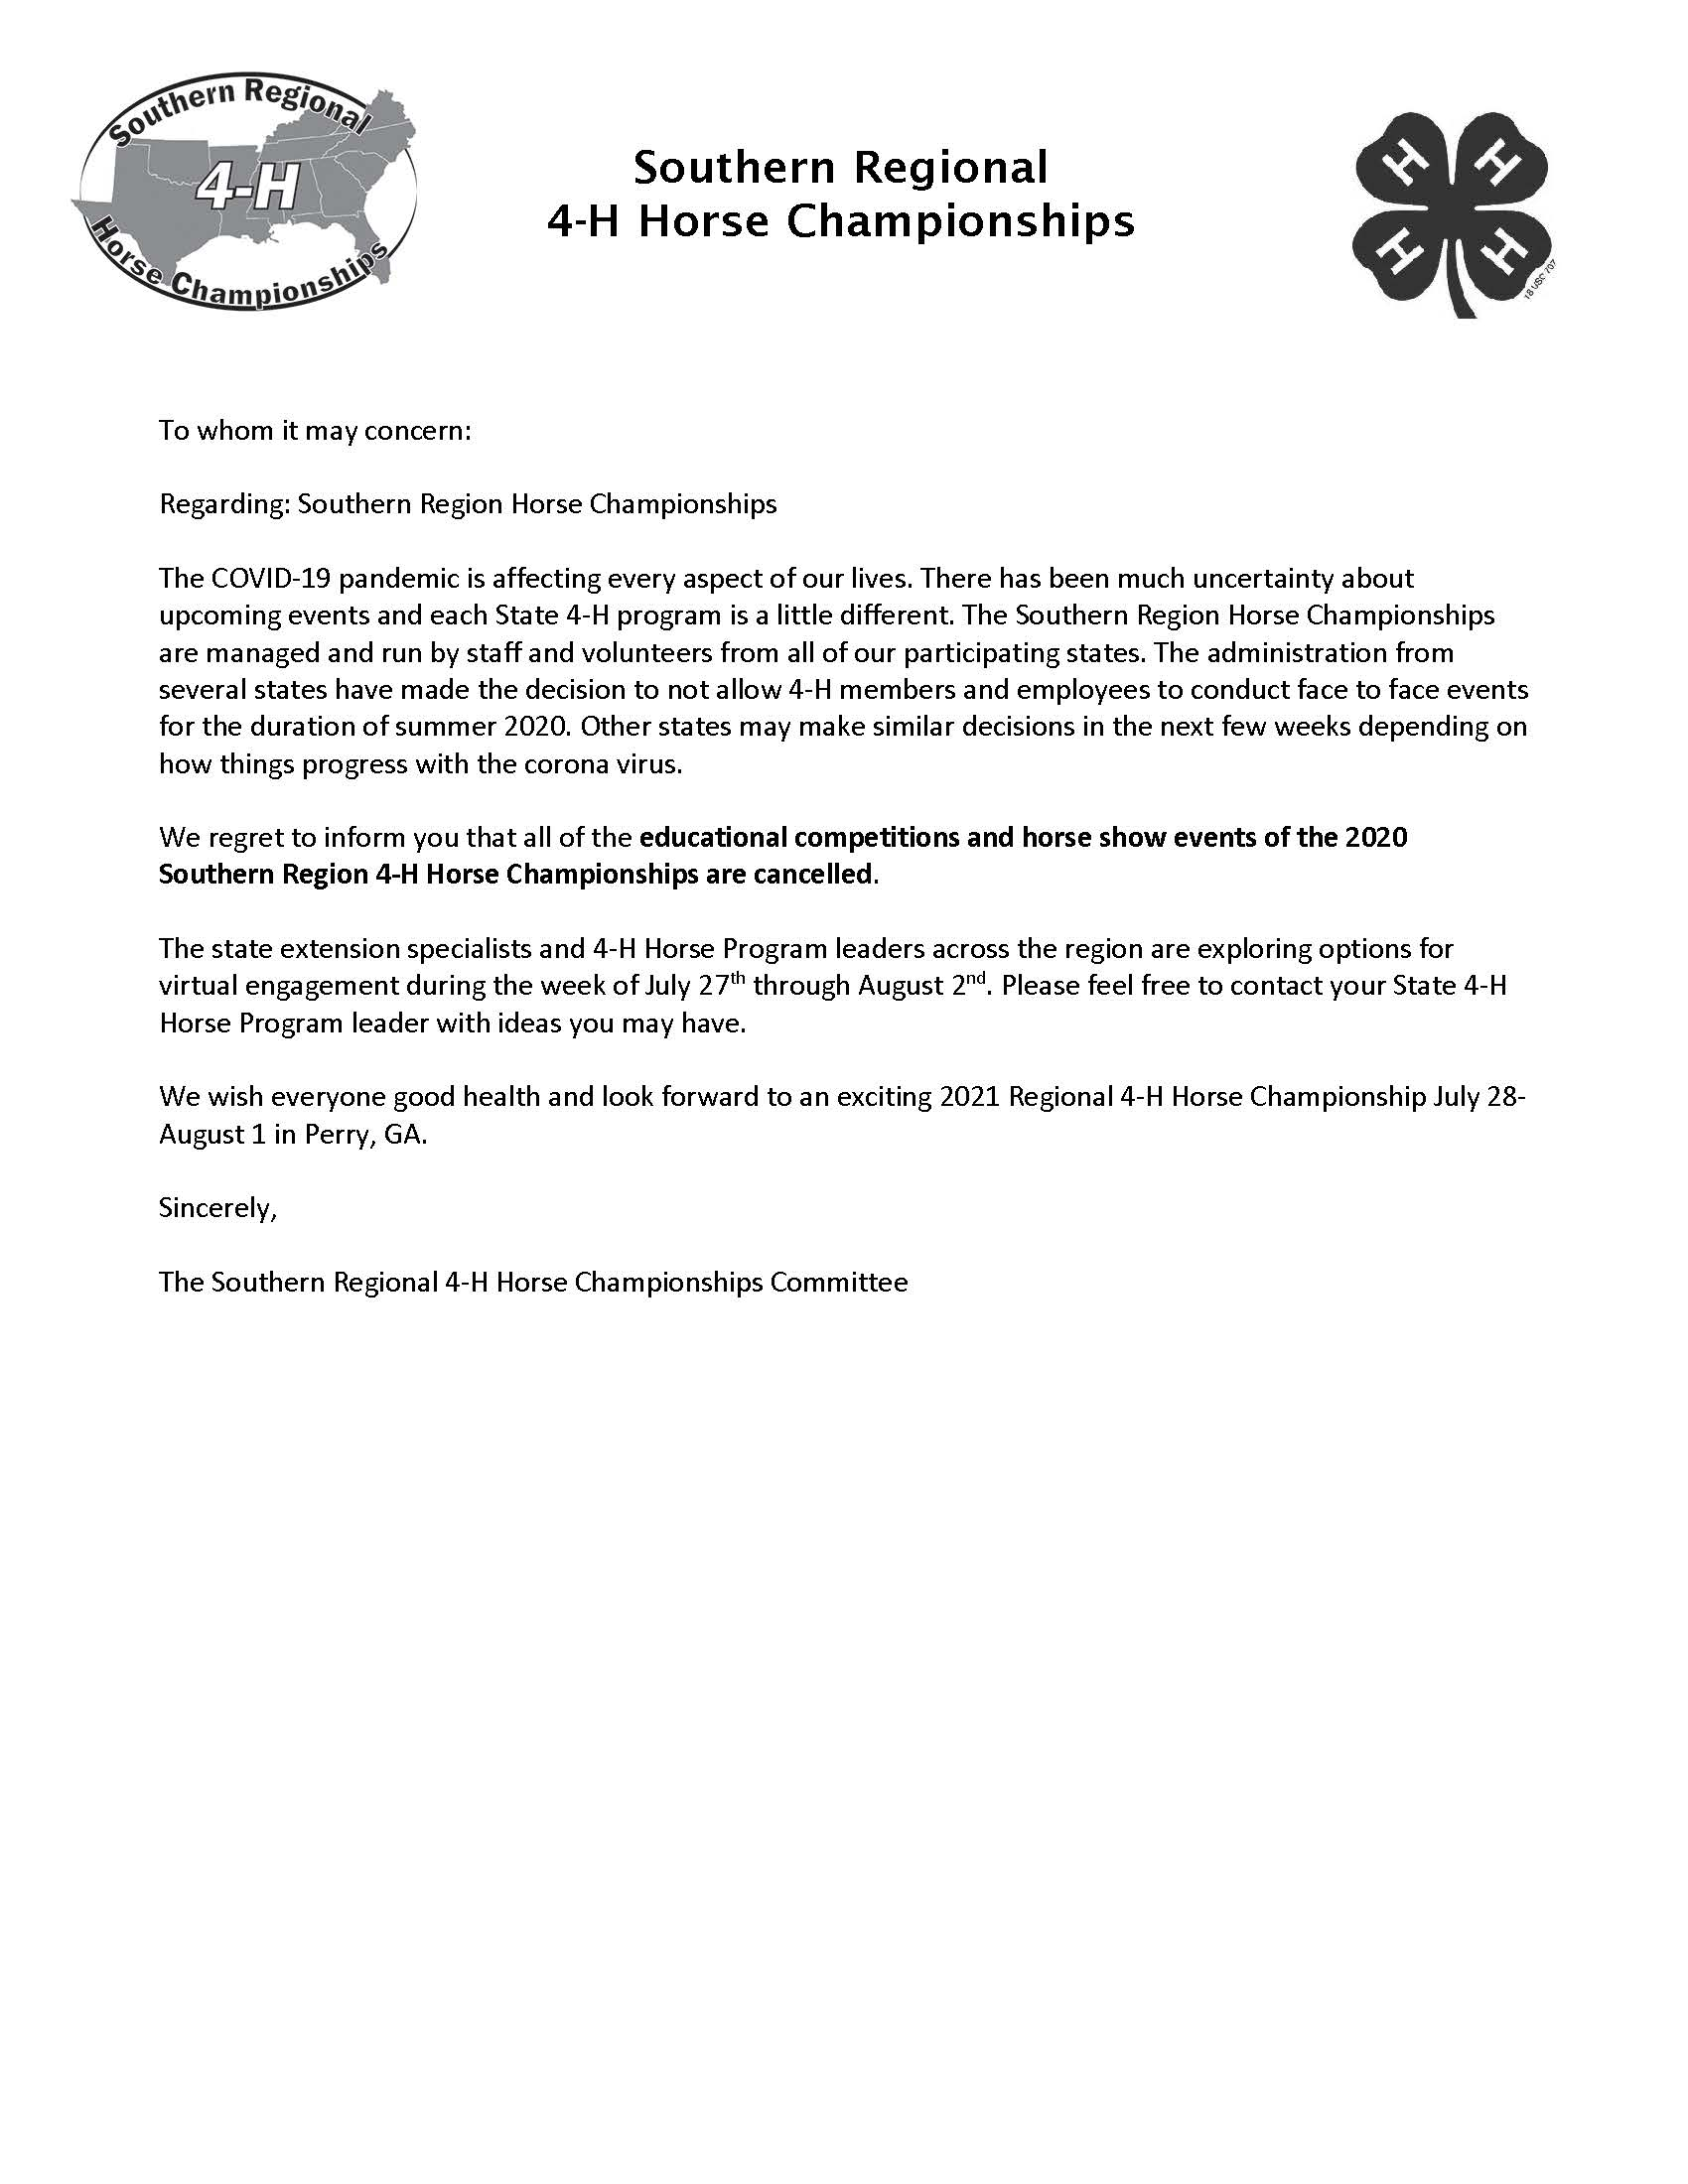 4-H Horse Championships press release